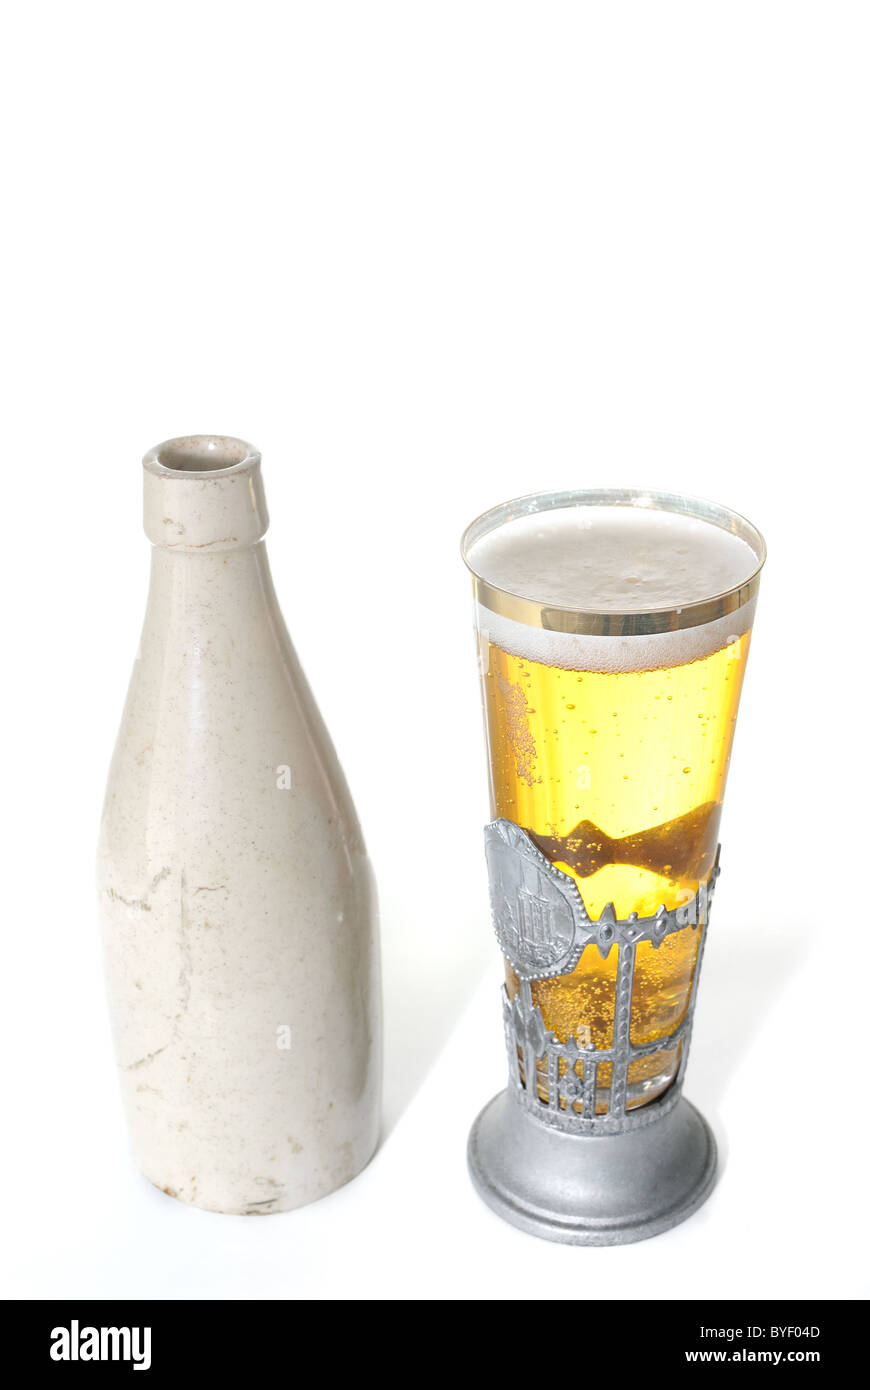 Old Ceramic Bottle and Beer in a uniqe stein glass isolated on a white background. - Stock Image